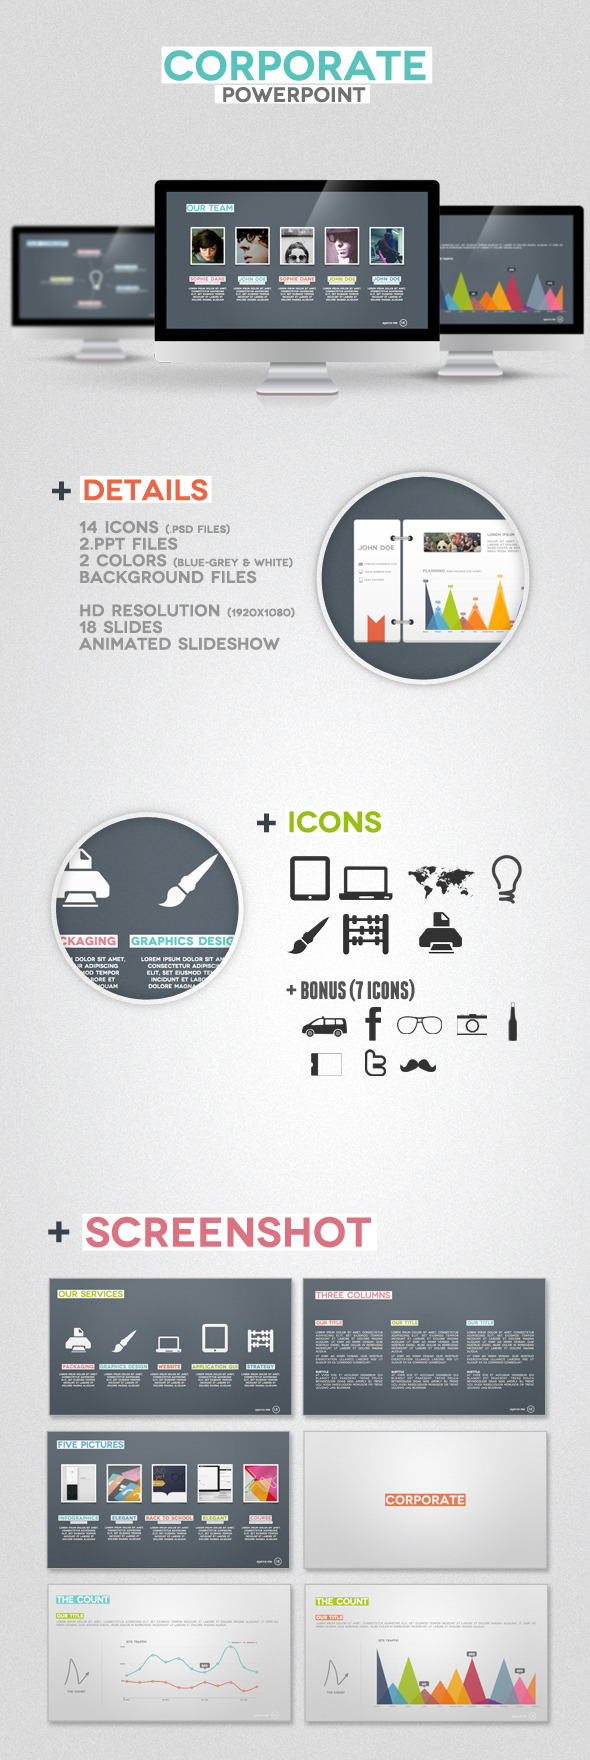 Corporate Presentation Powerpoint - Business PowerPoint Templates